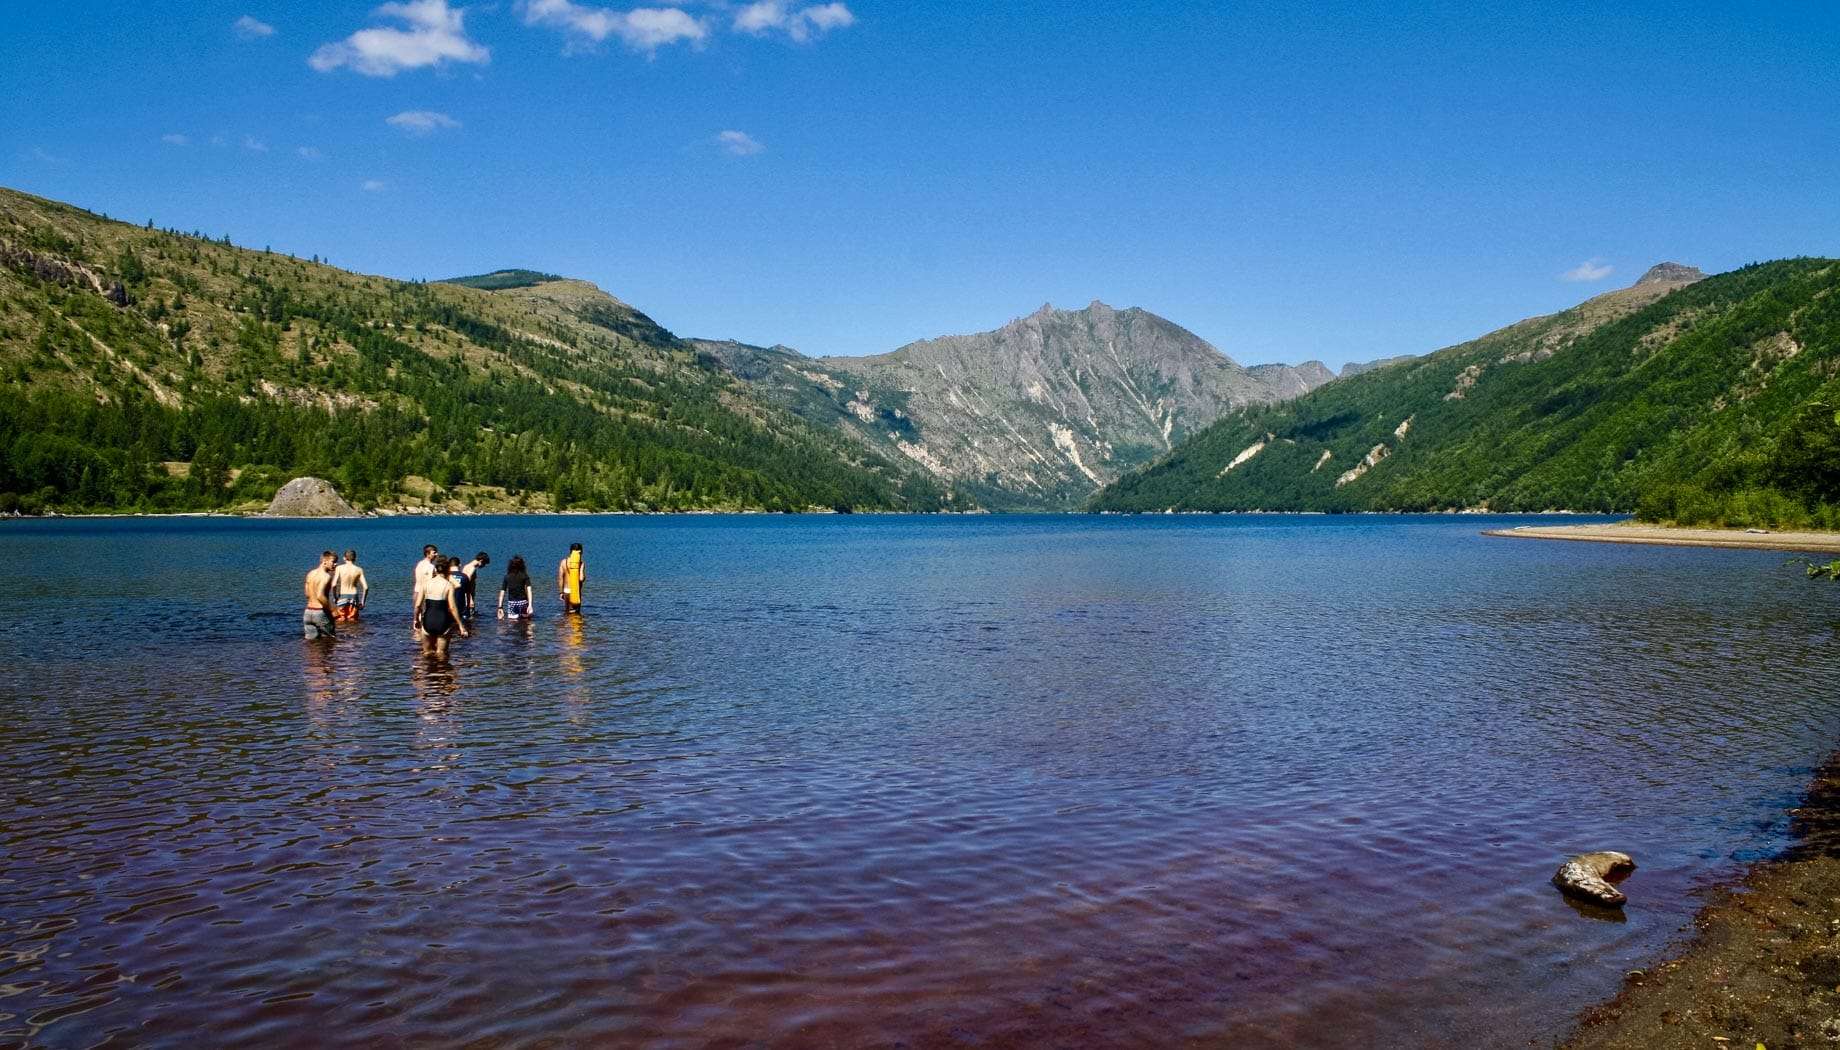 Swimming on the Northwest Canada quest